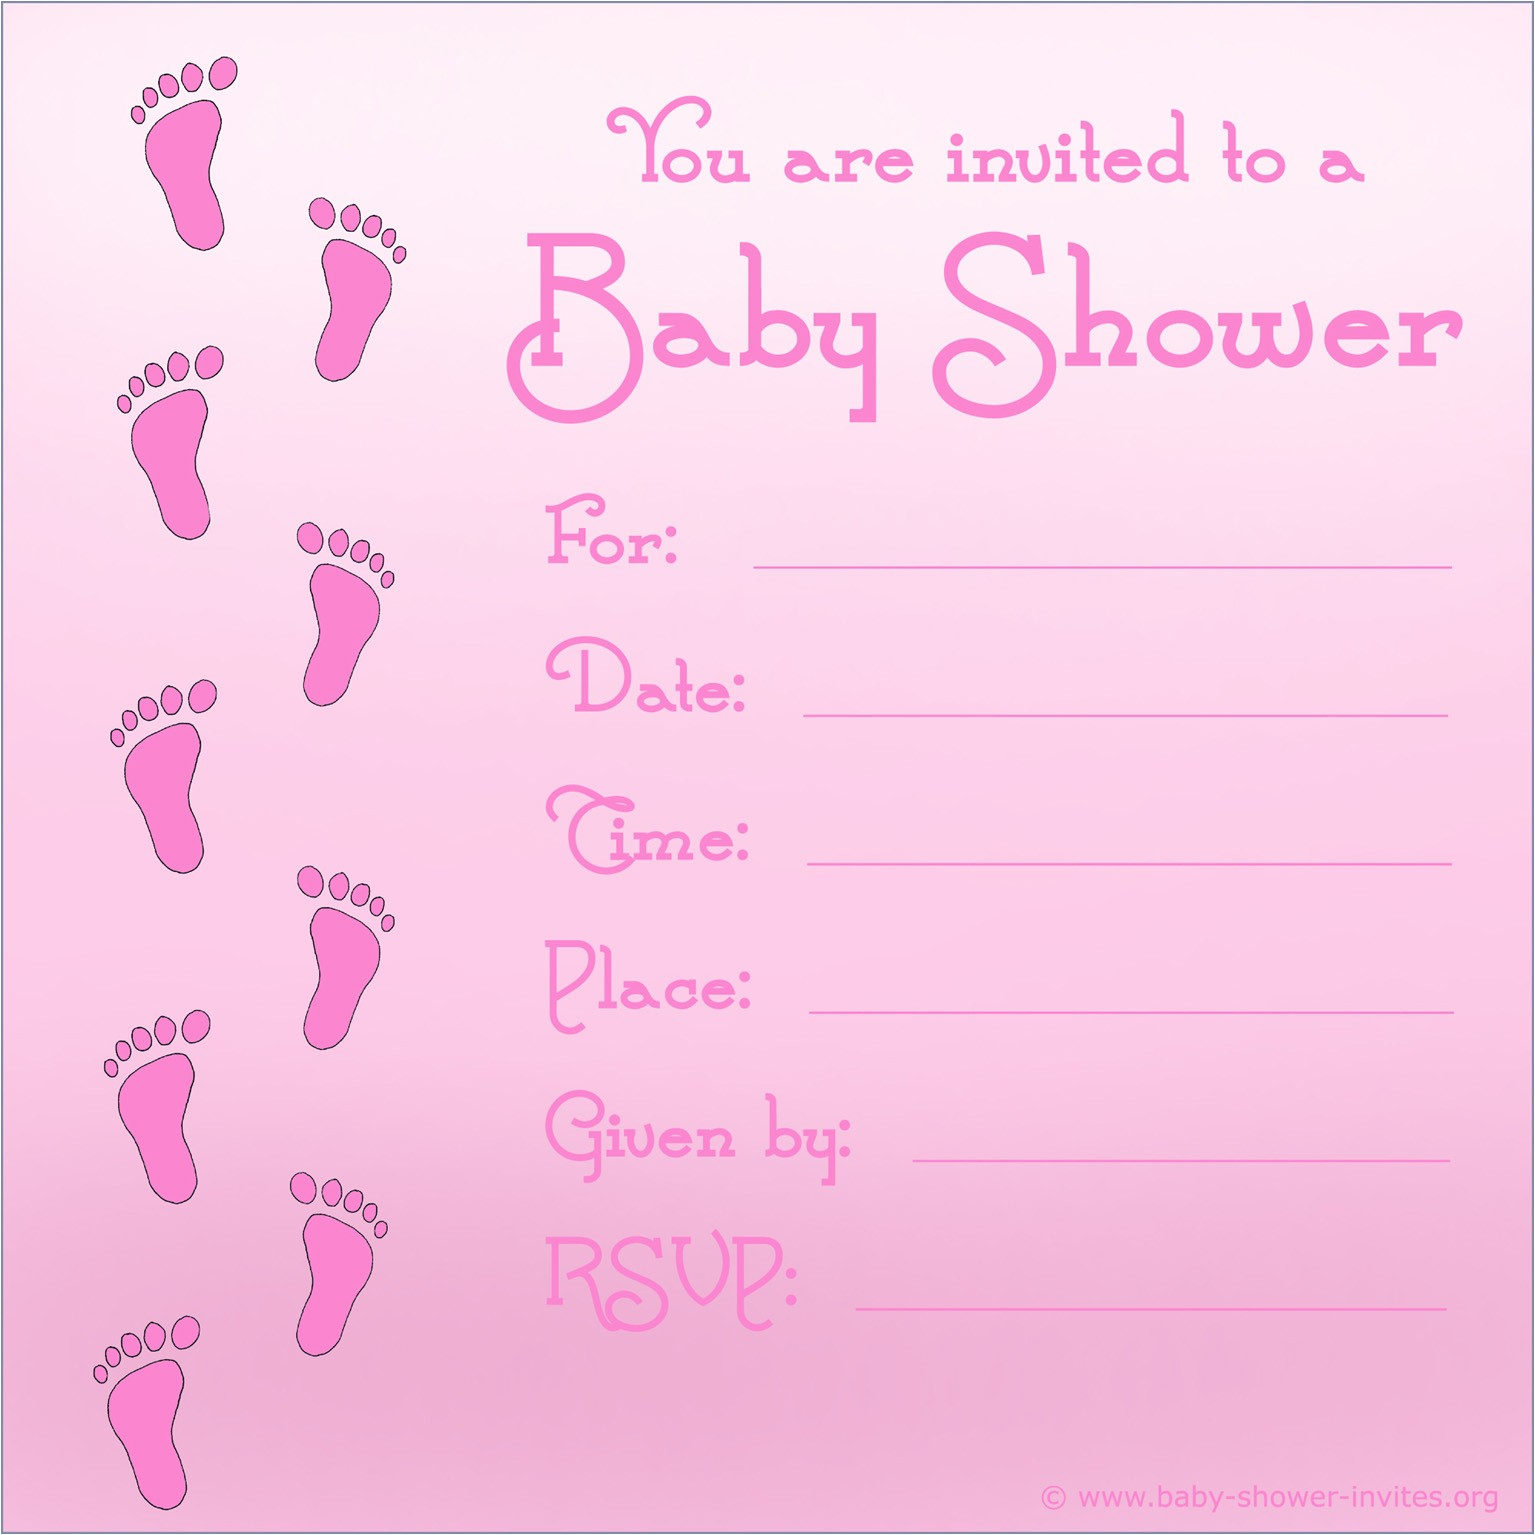 Create Your Own Free Printable Baby Shower Invitations Free Printable Baby Shower Invitations for Girls